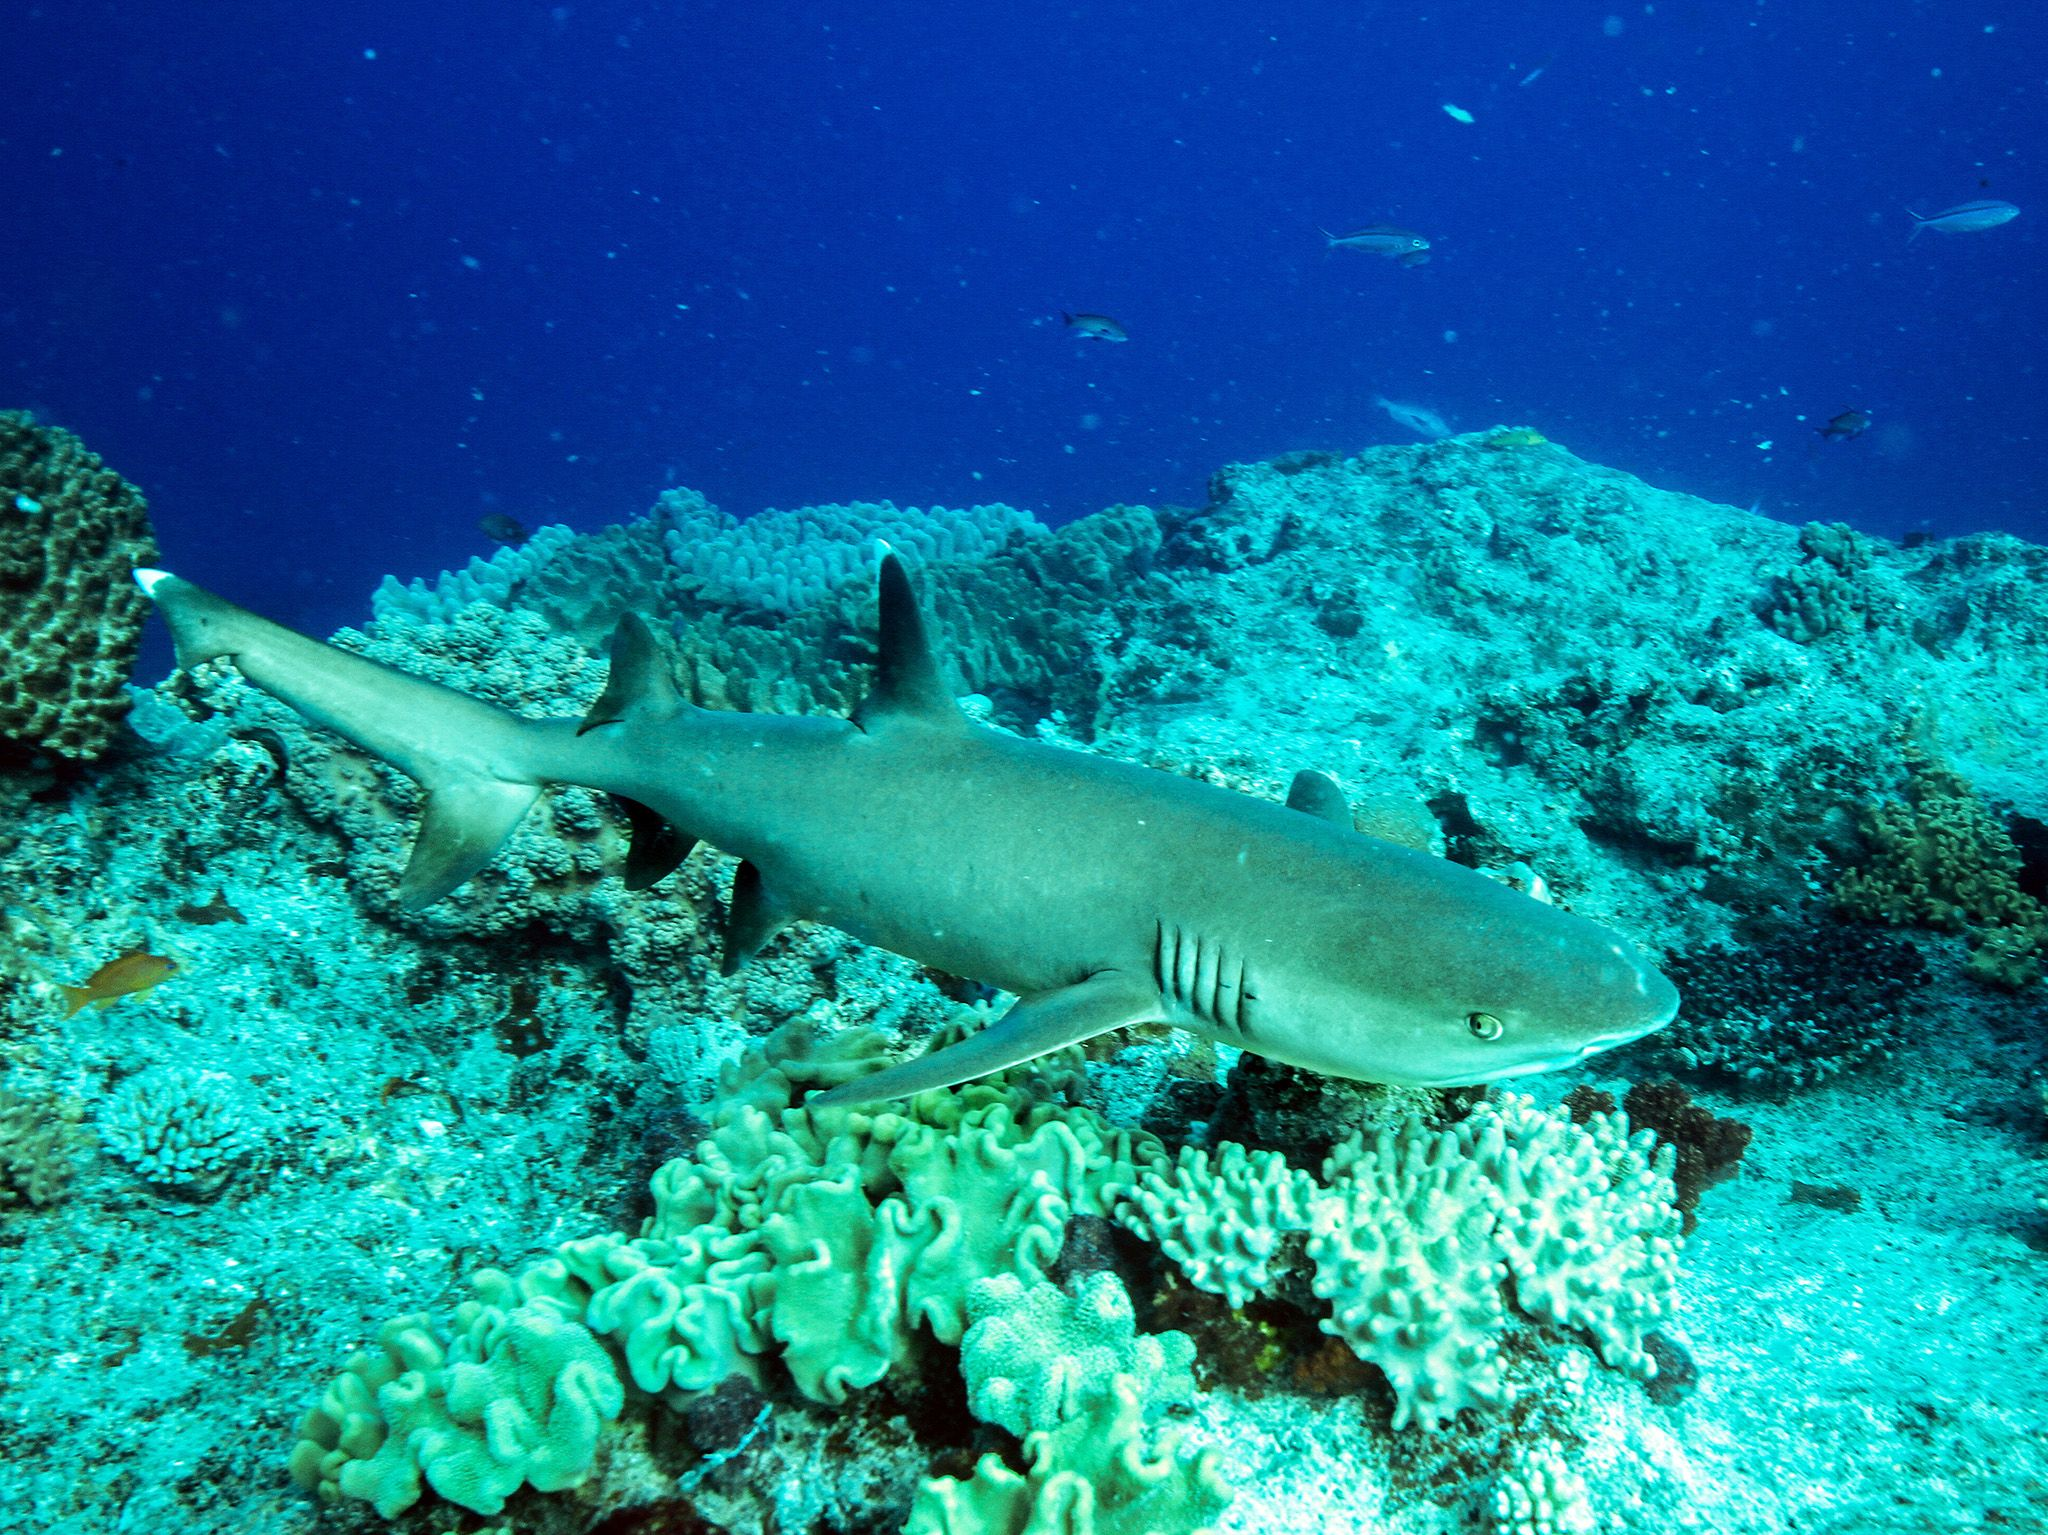 A Whitetip Reef Shark swims among the coral on New Caledonia's barrier reef, the second largest... [Photo of the day - July 2019]